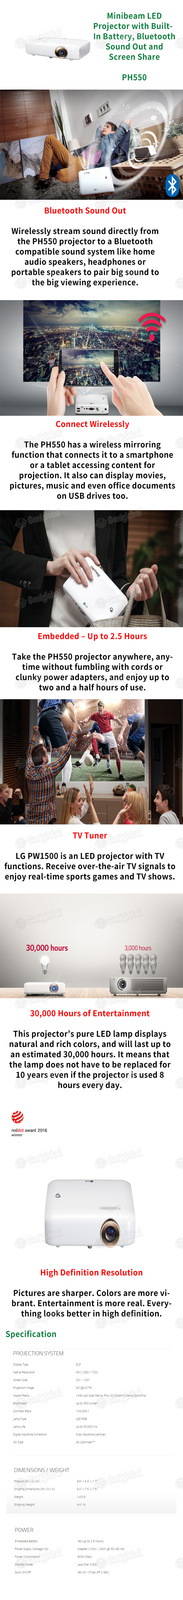 LG LG PH550 MINIBEAM Projector for Mobile / LED DLP Projector / HD1280X720 / 550